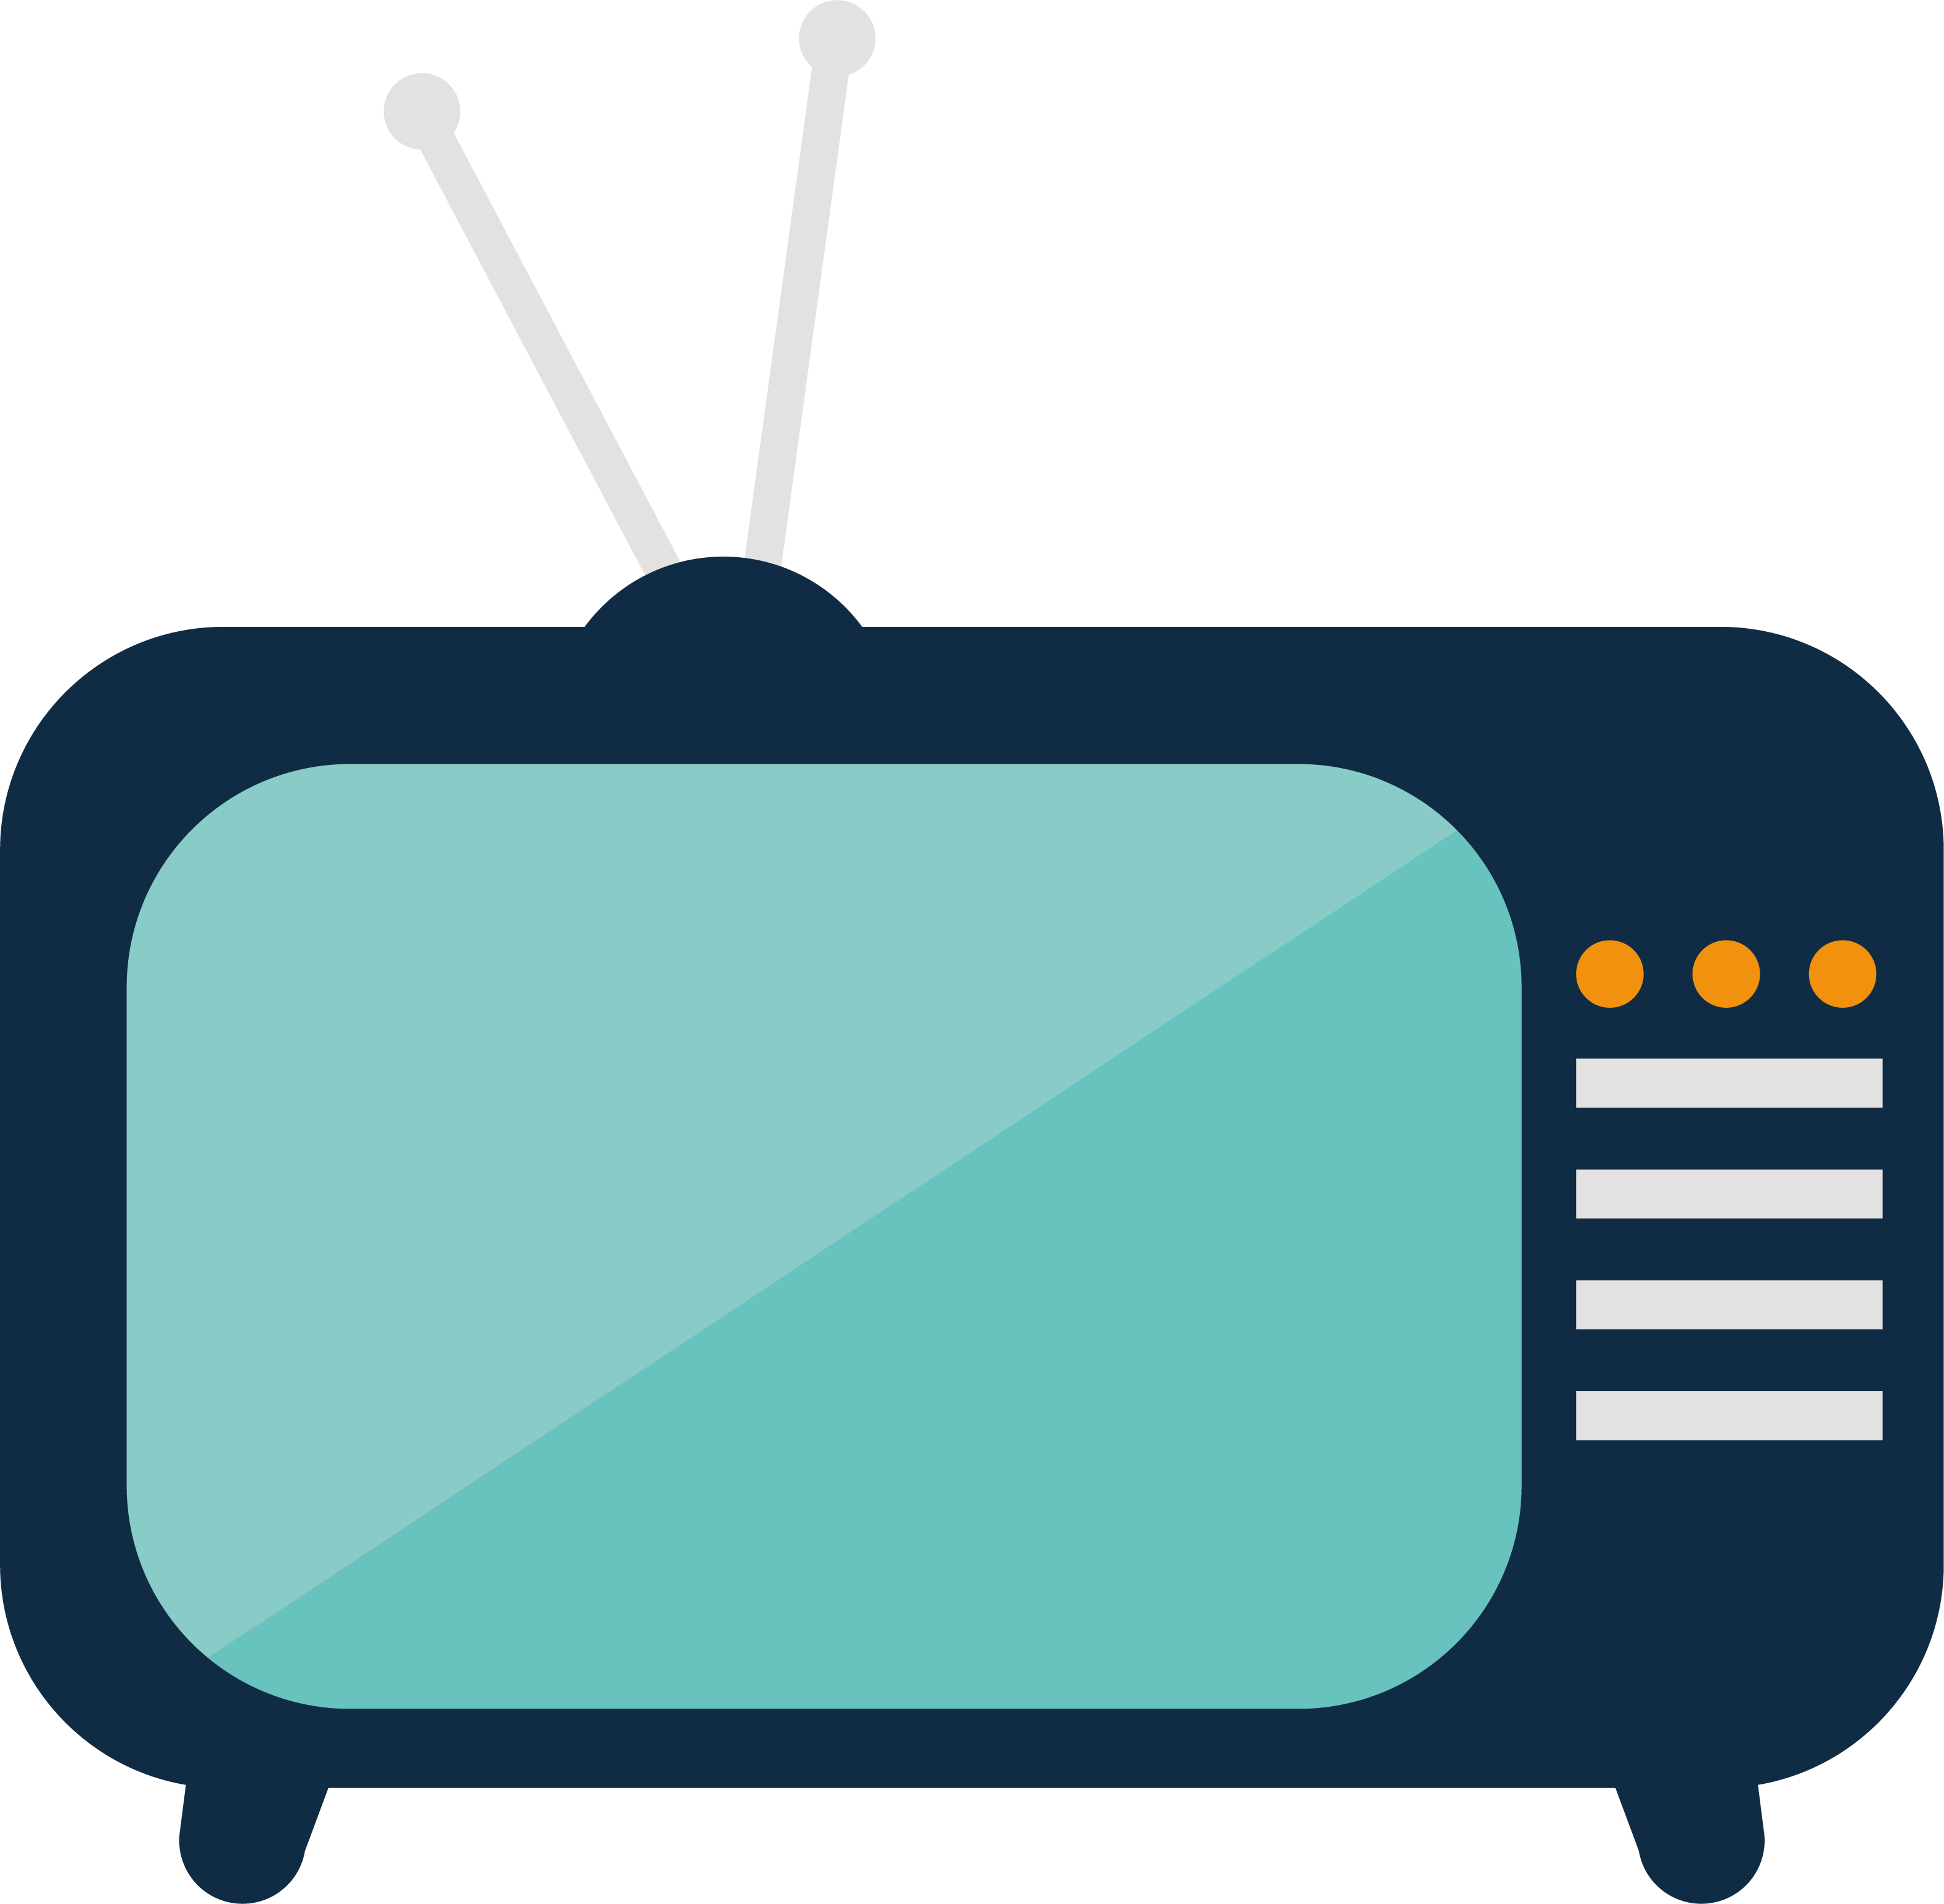 tv-clipart-small-4.png (3154×3089)